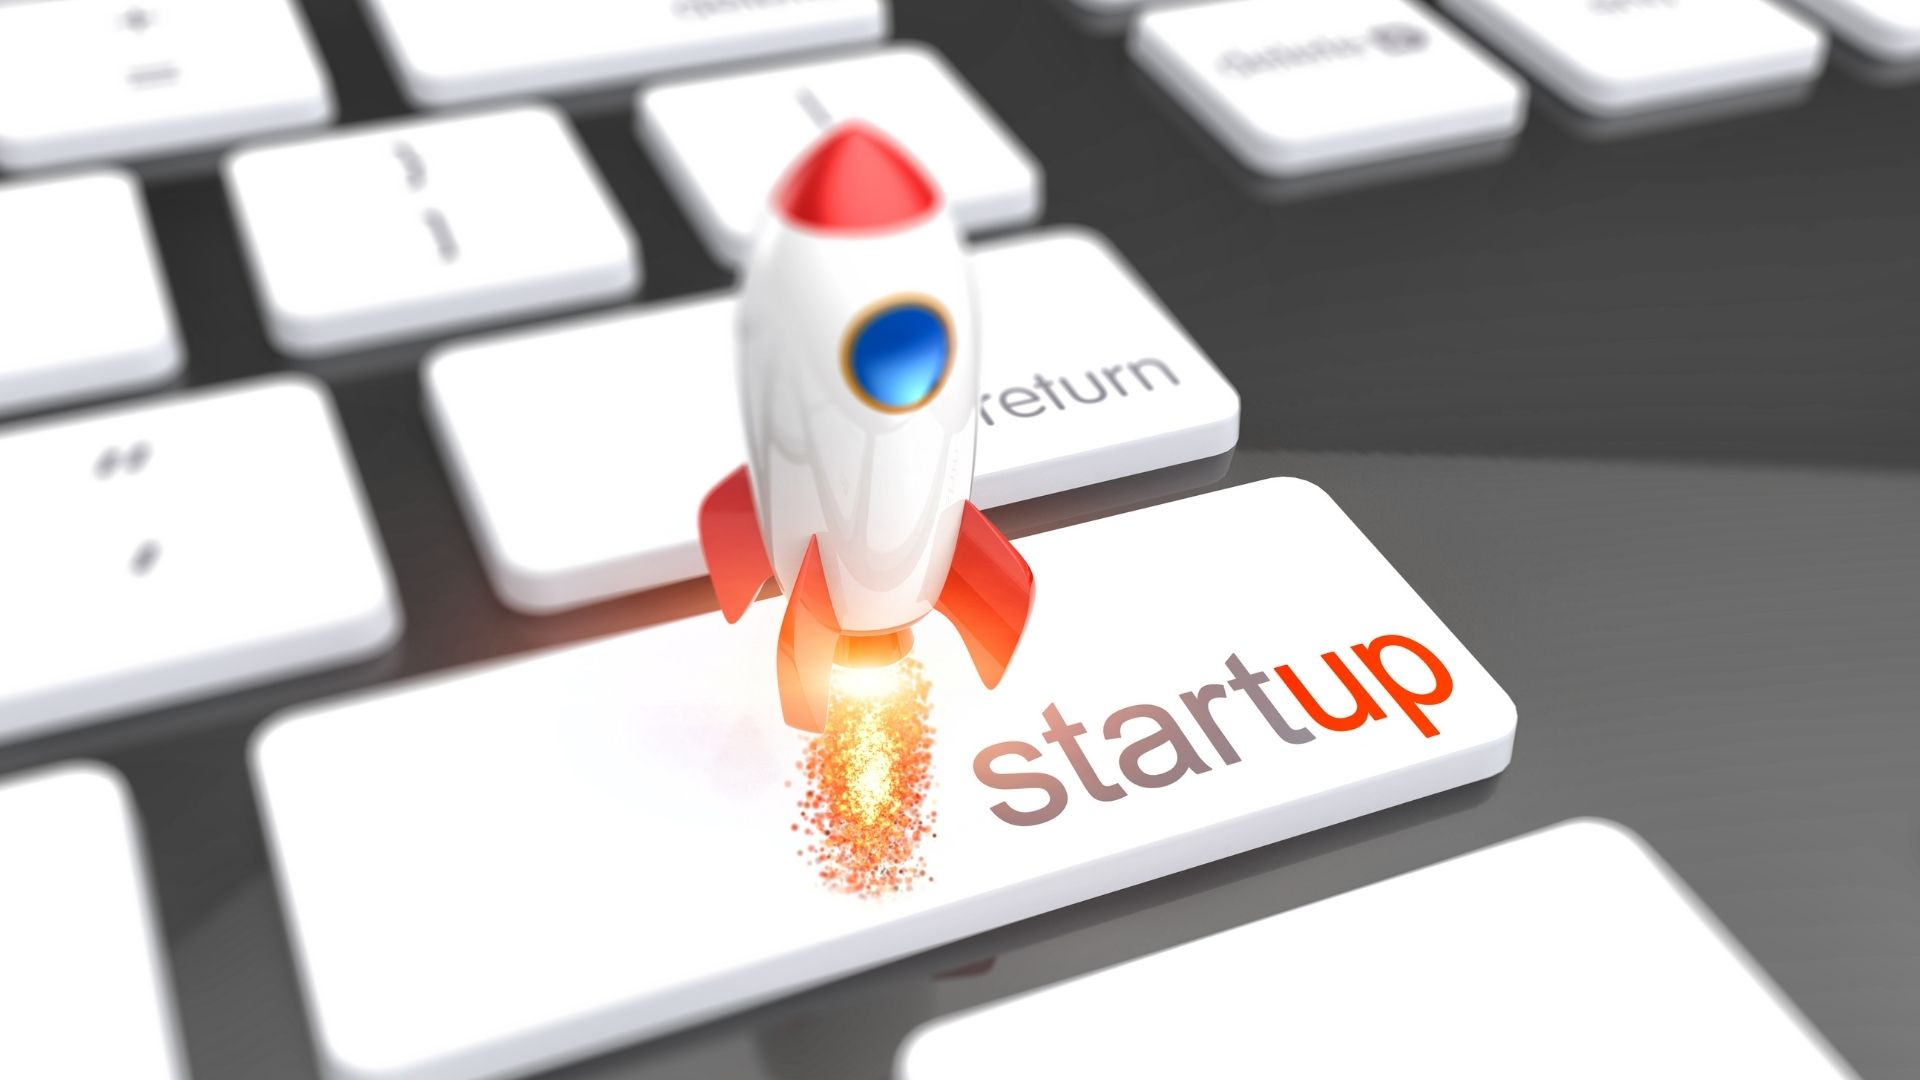 Tips on how startups can turn their business into a success 41